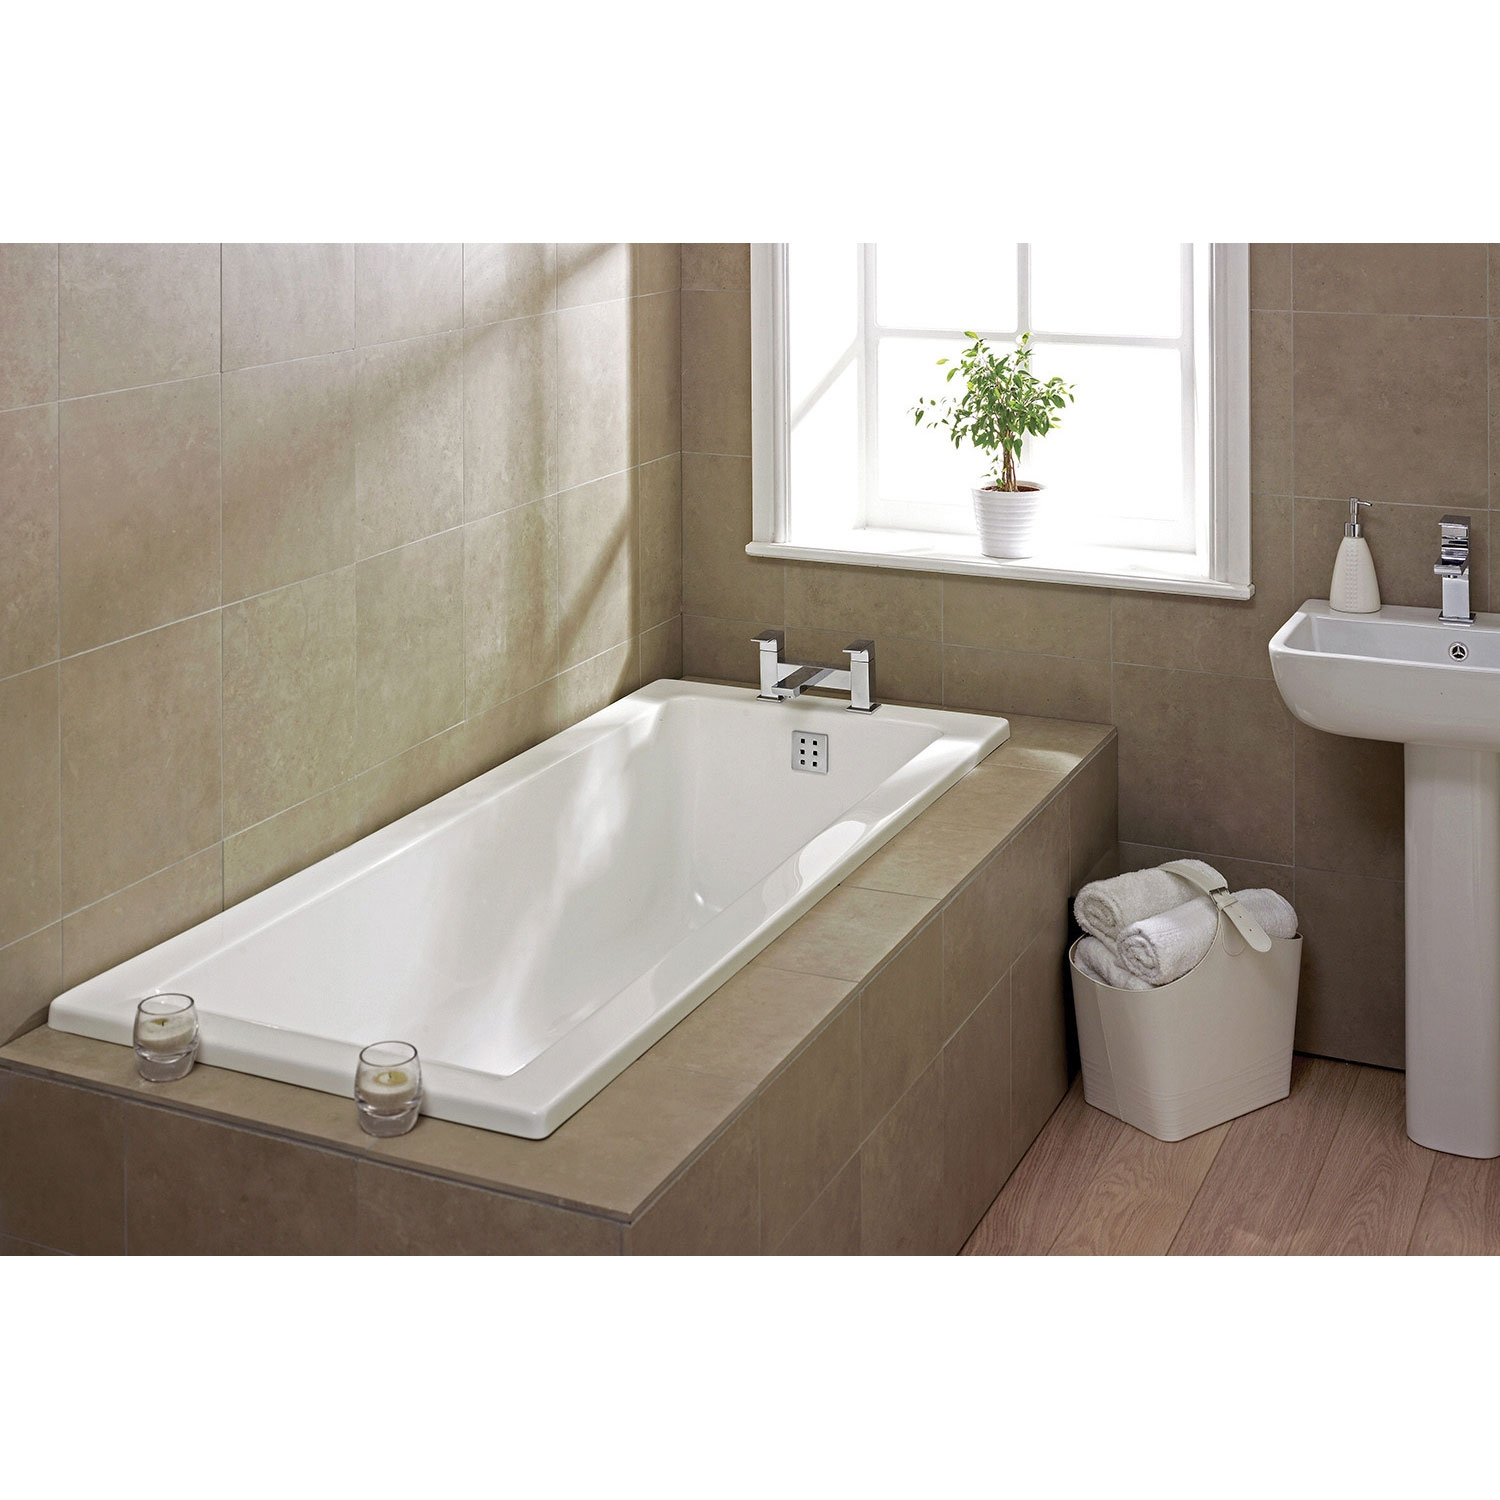 Verona Atlanta Single Ended Rectangular Bath 1400mm x 700mm - 0 Tap Hole